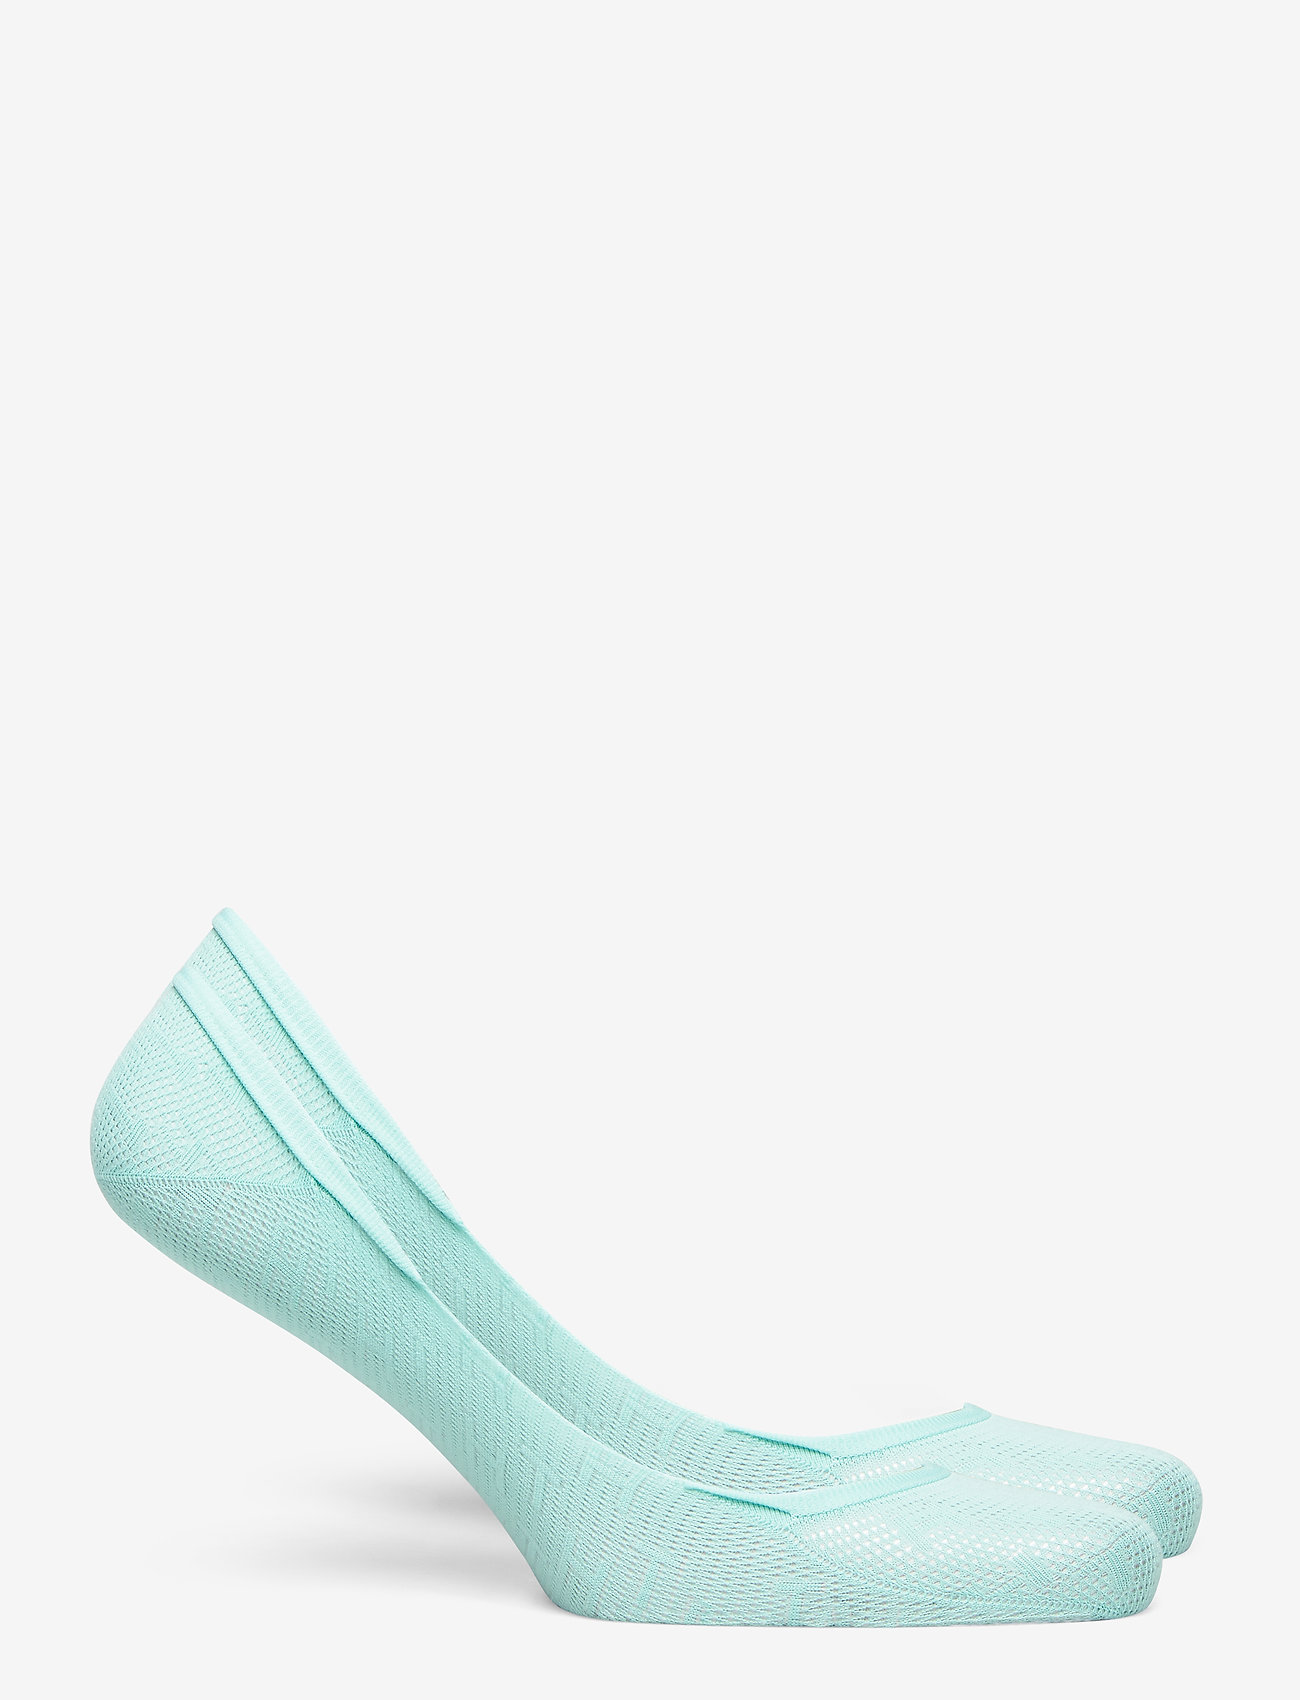 Tommy Hilfiger - TH WOMEN FOOTIE 2P TH BURN OUT - footies - mint leaf - 1